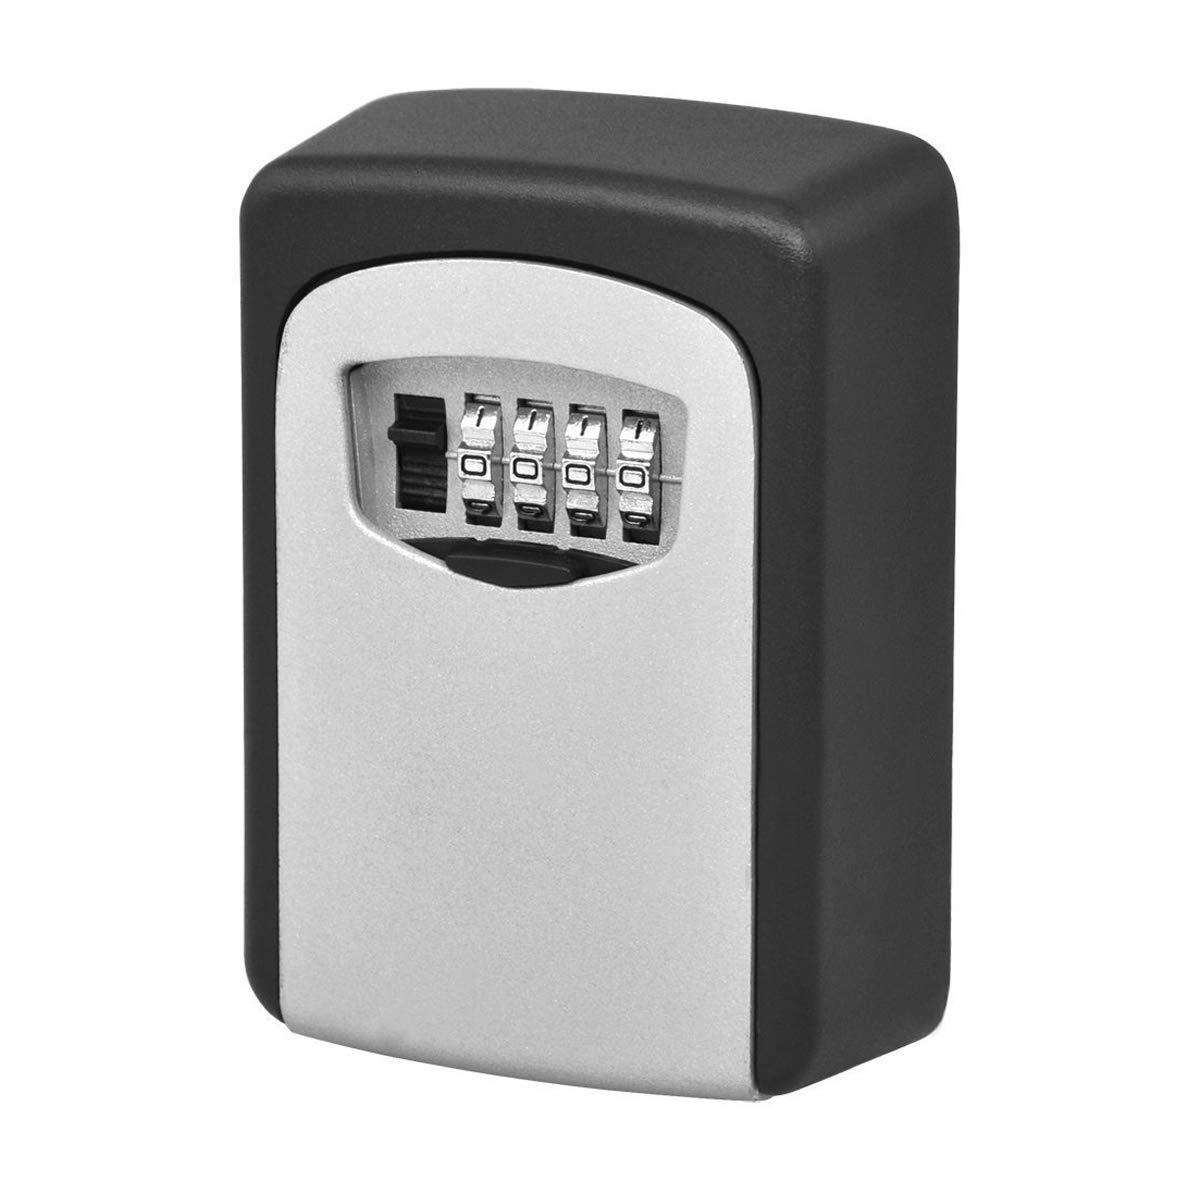 Key Lock Box, Exterior Outdoor Waterproof Hide Wall Mounted Key Safe Box - House use Key Storage Lock Box, Uitable for Families Secure Keys for Home, Office, School, Garage, Realtors, Contractors